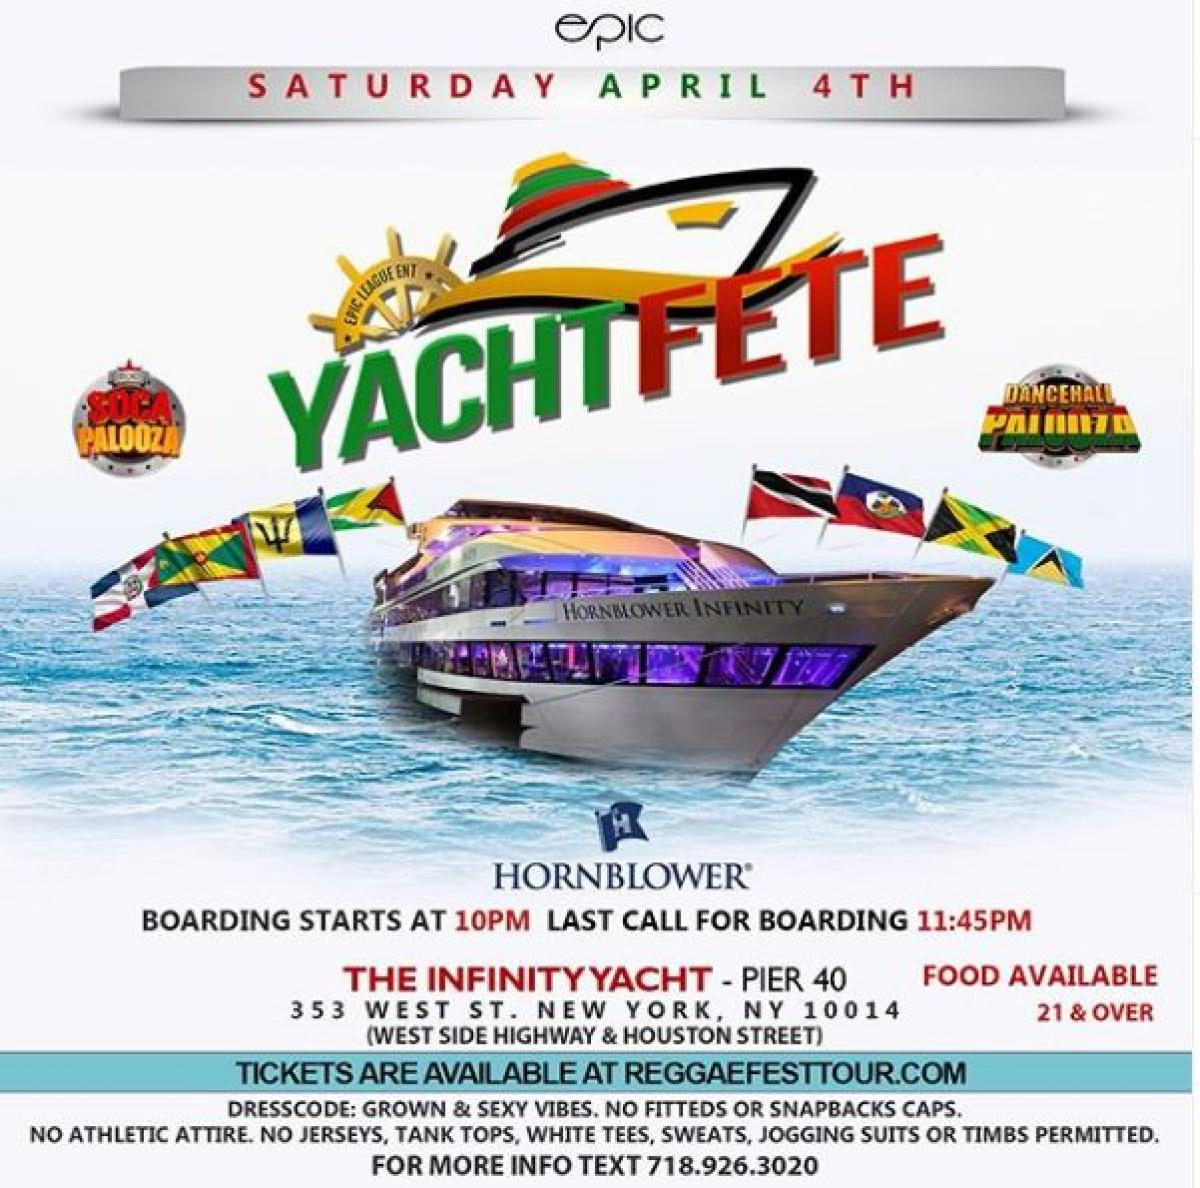 Yacht Fete flyer or graphic.